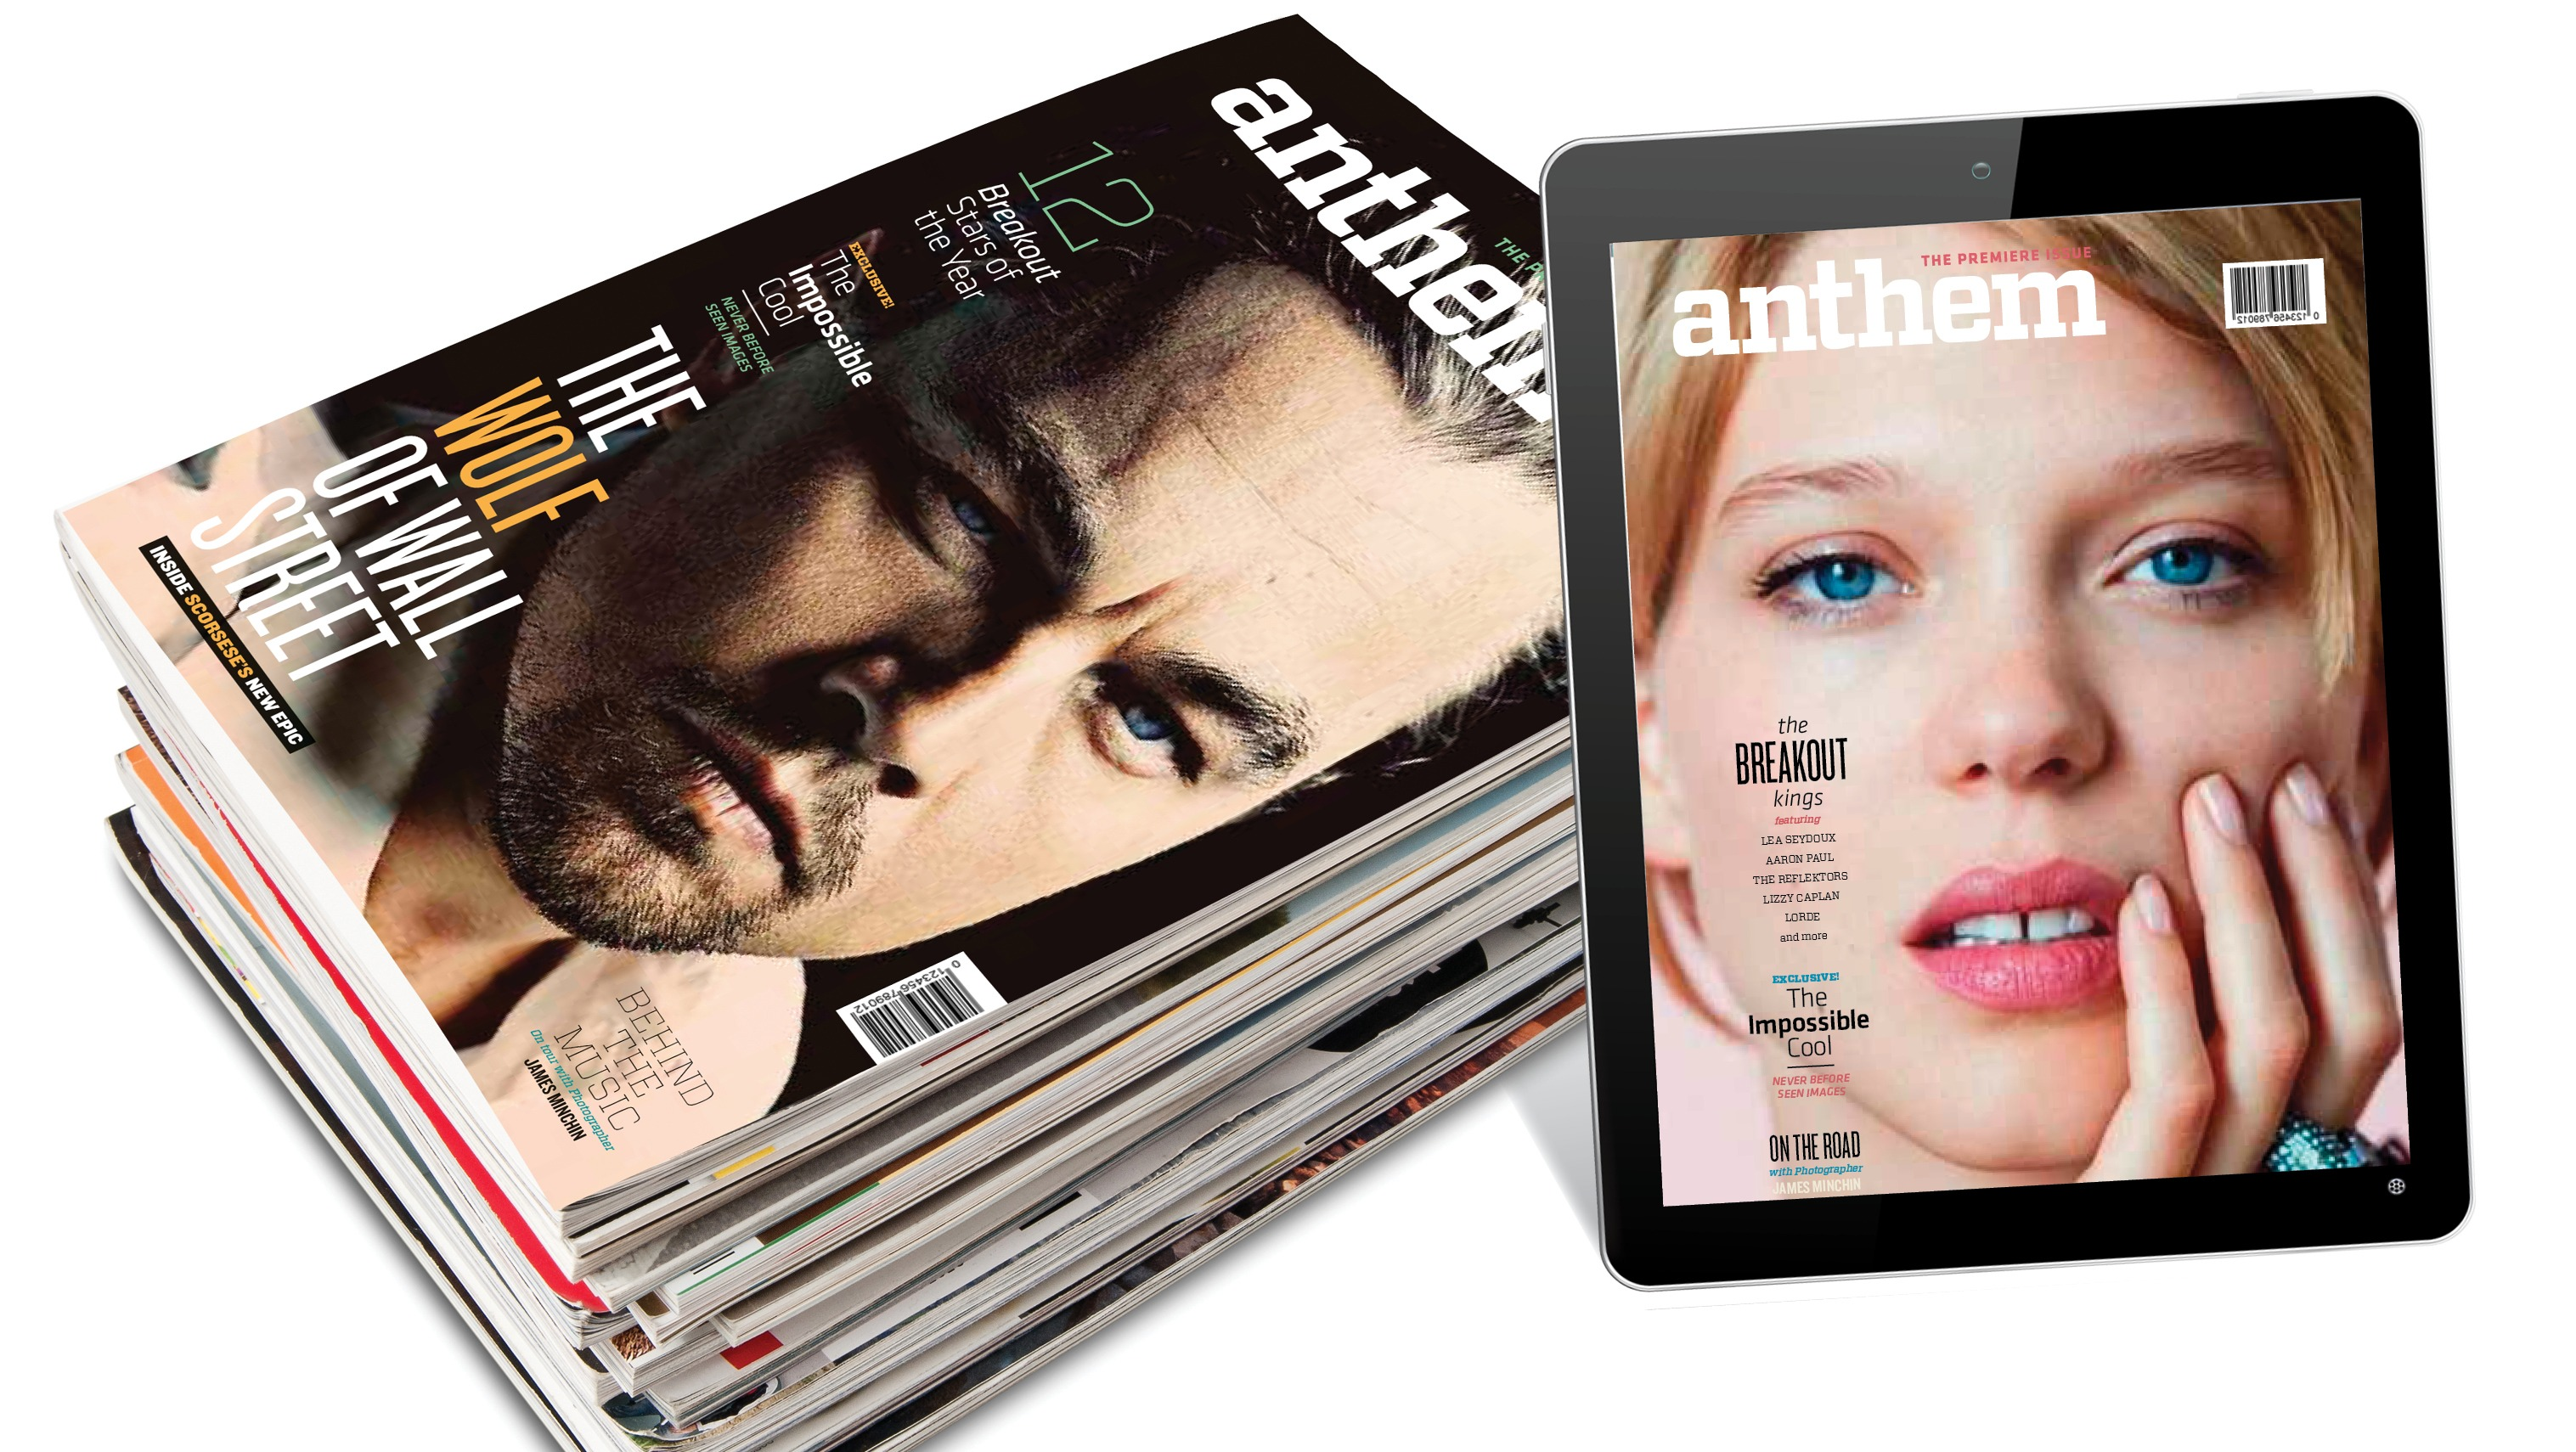 stack of magazines next to an ipad with a magazine cover.